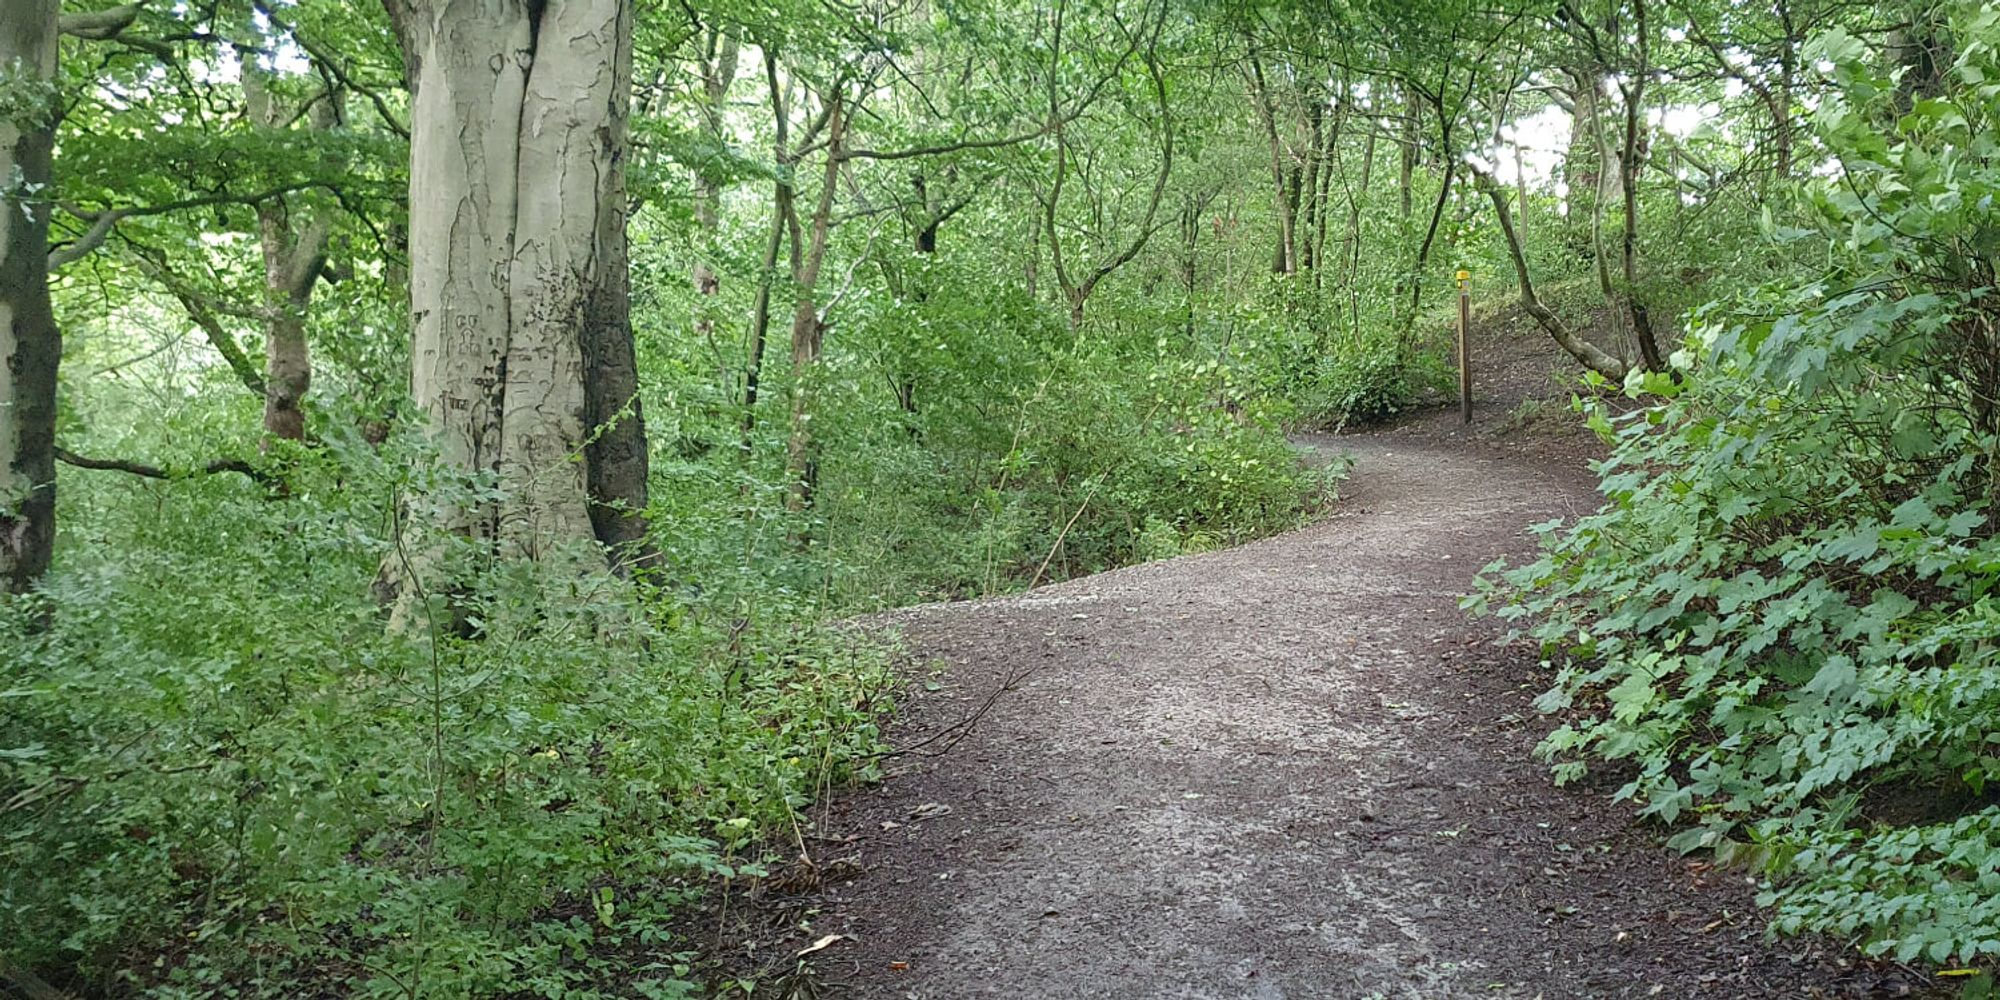 Muddy path through Nan Whins Woods surrounded by undergrowth